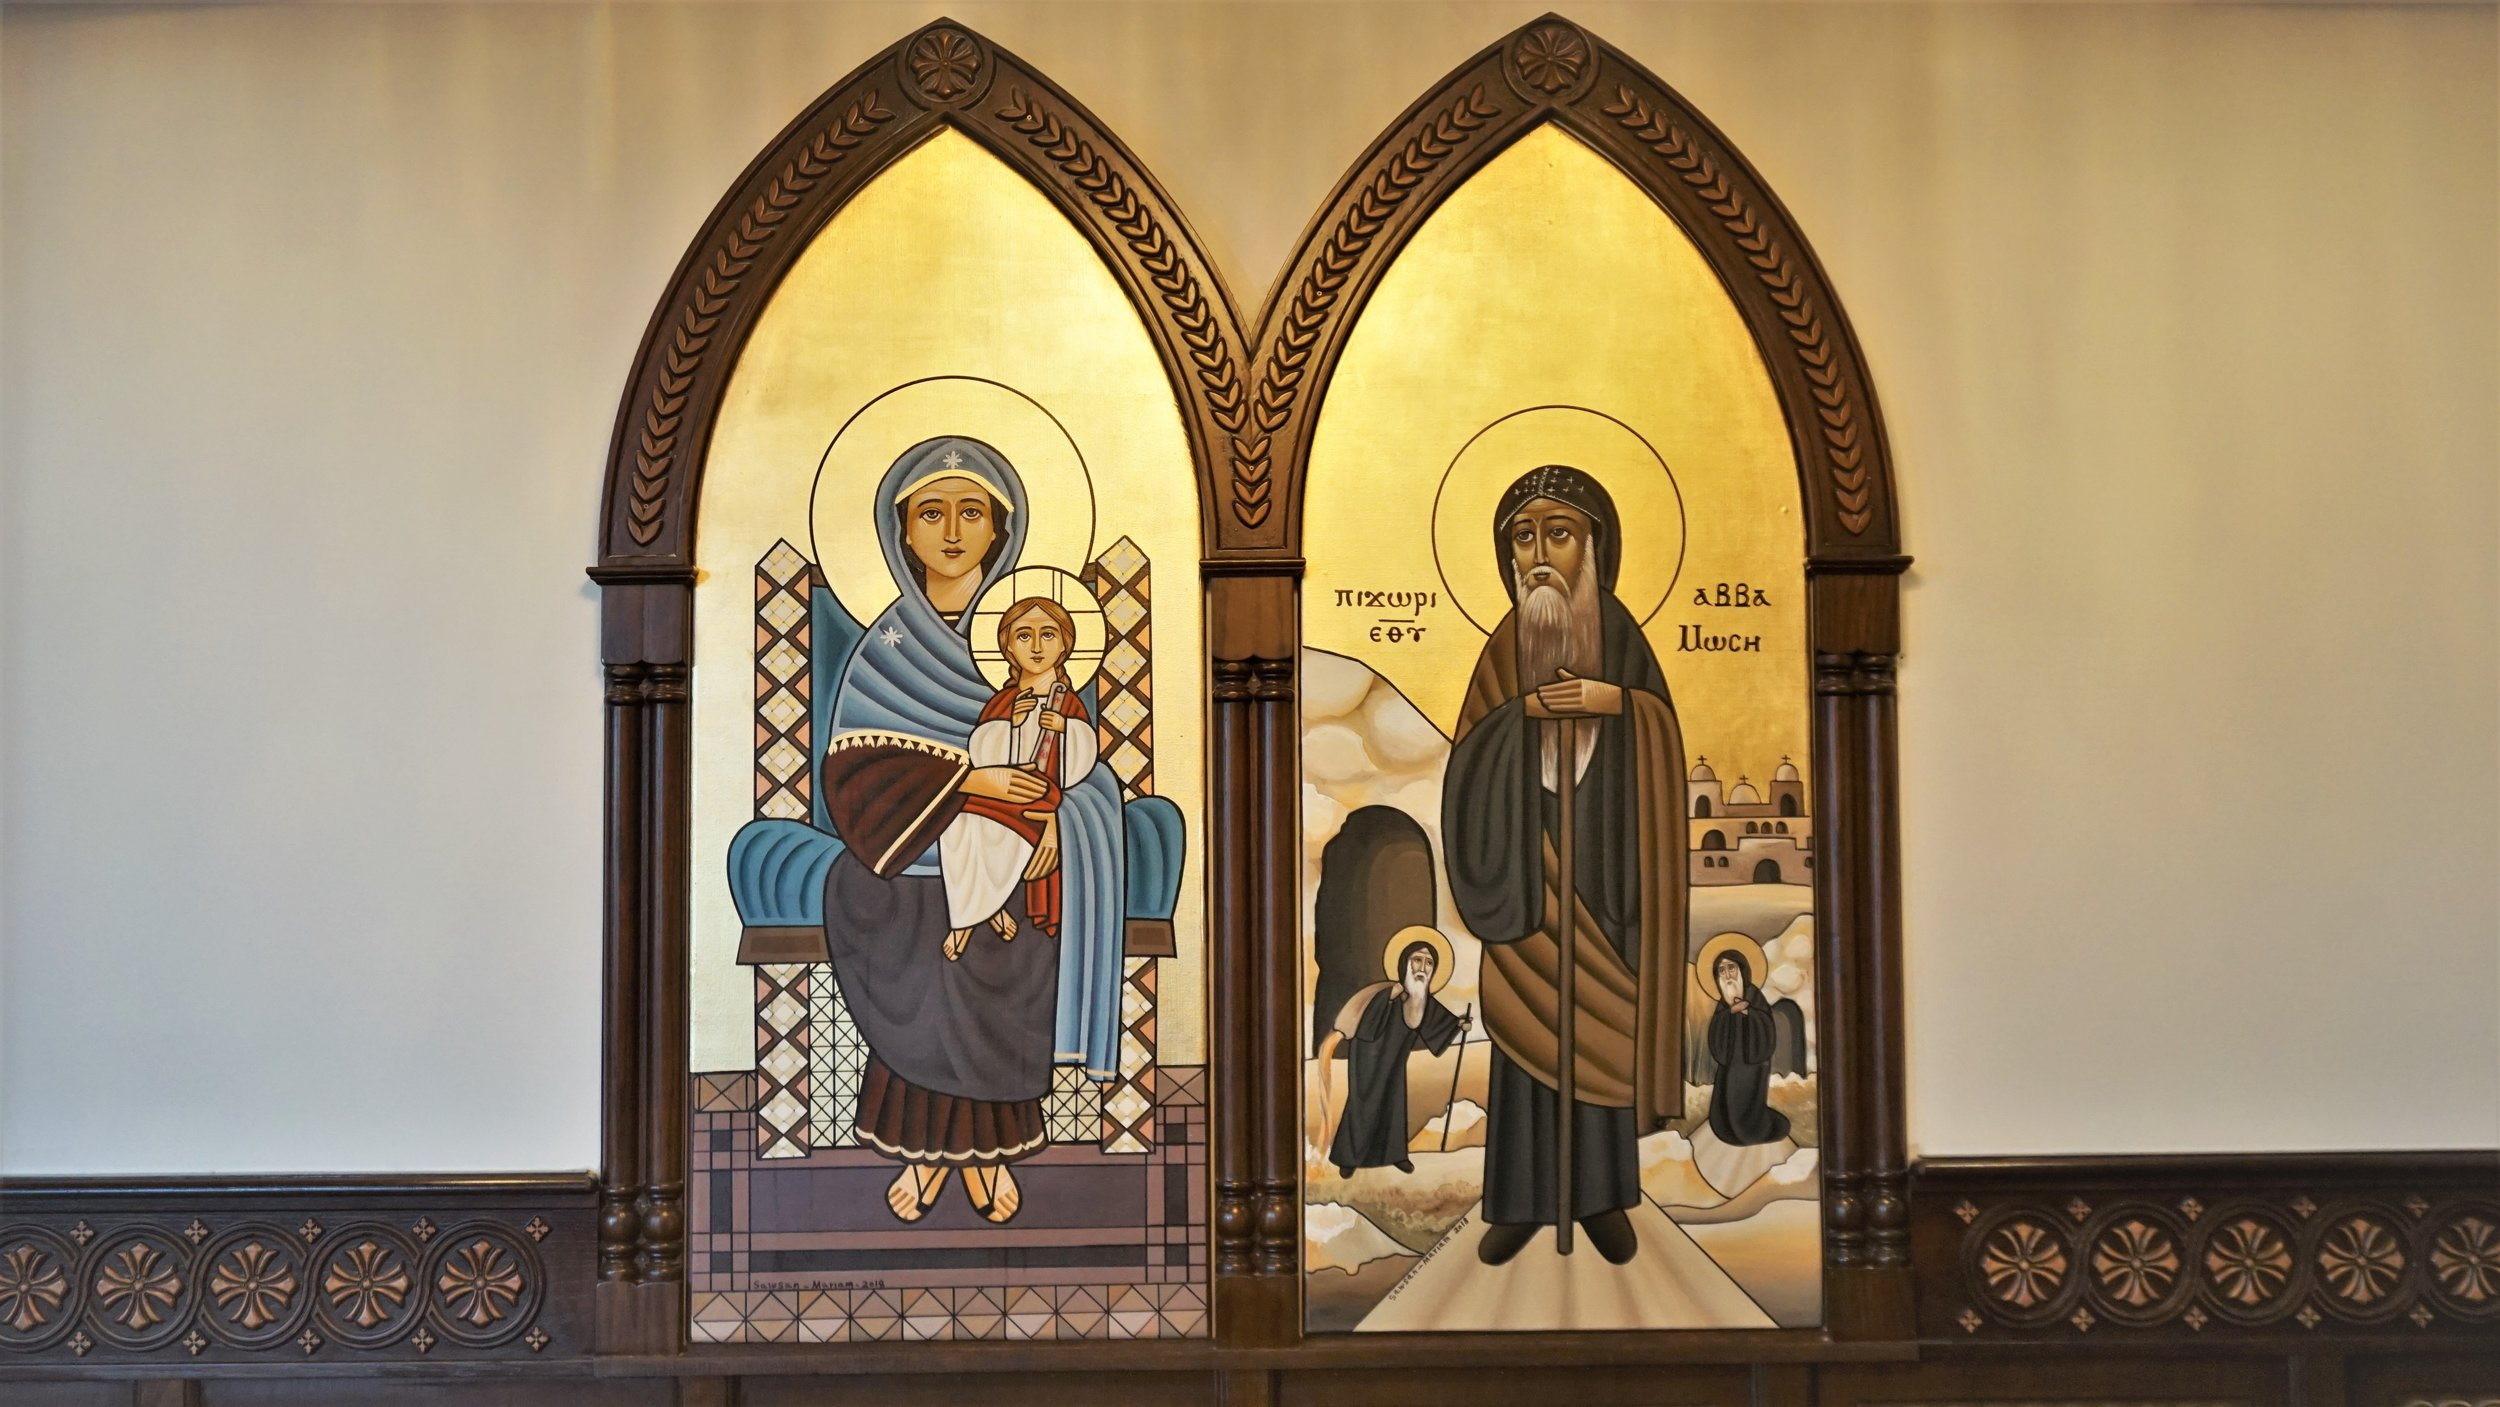 These, and similar iconography, can be found around the church. They depict St.Mary (left) and St.Moses (right) in traditional Coptic icon writing.